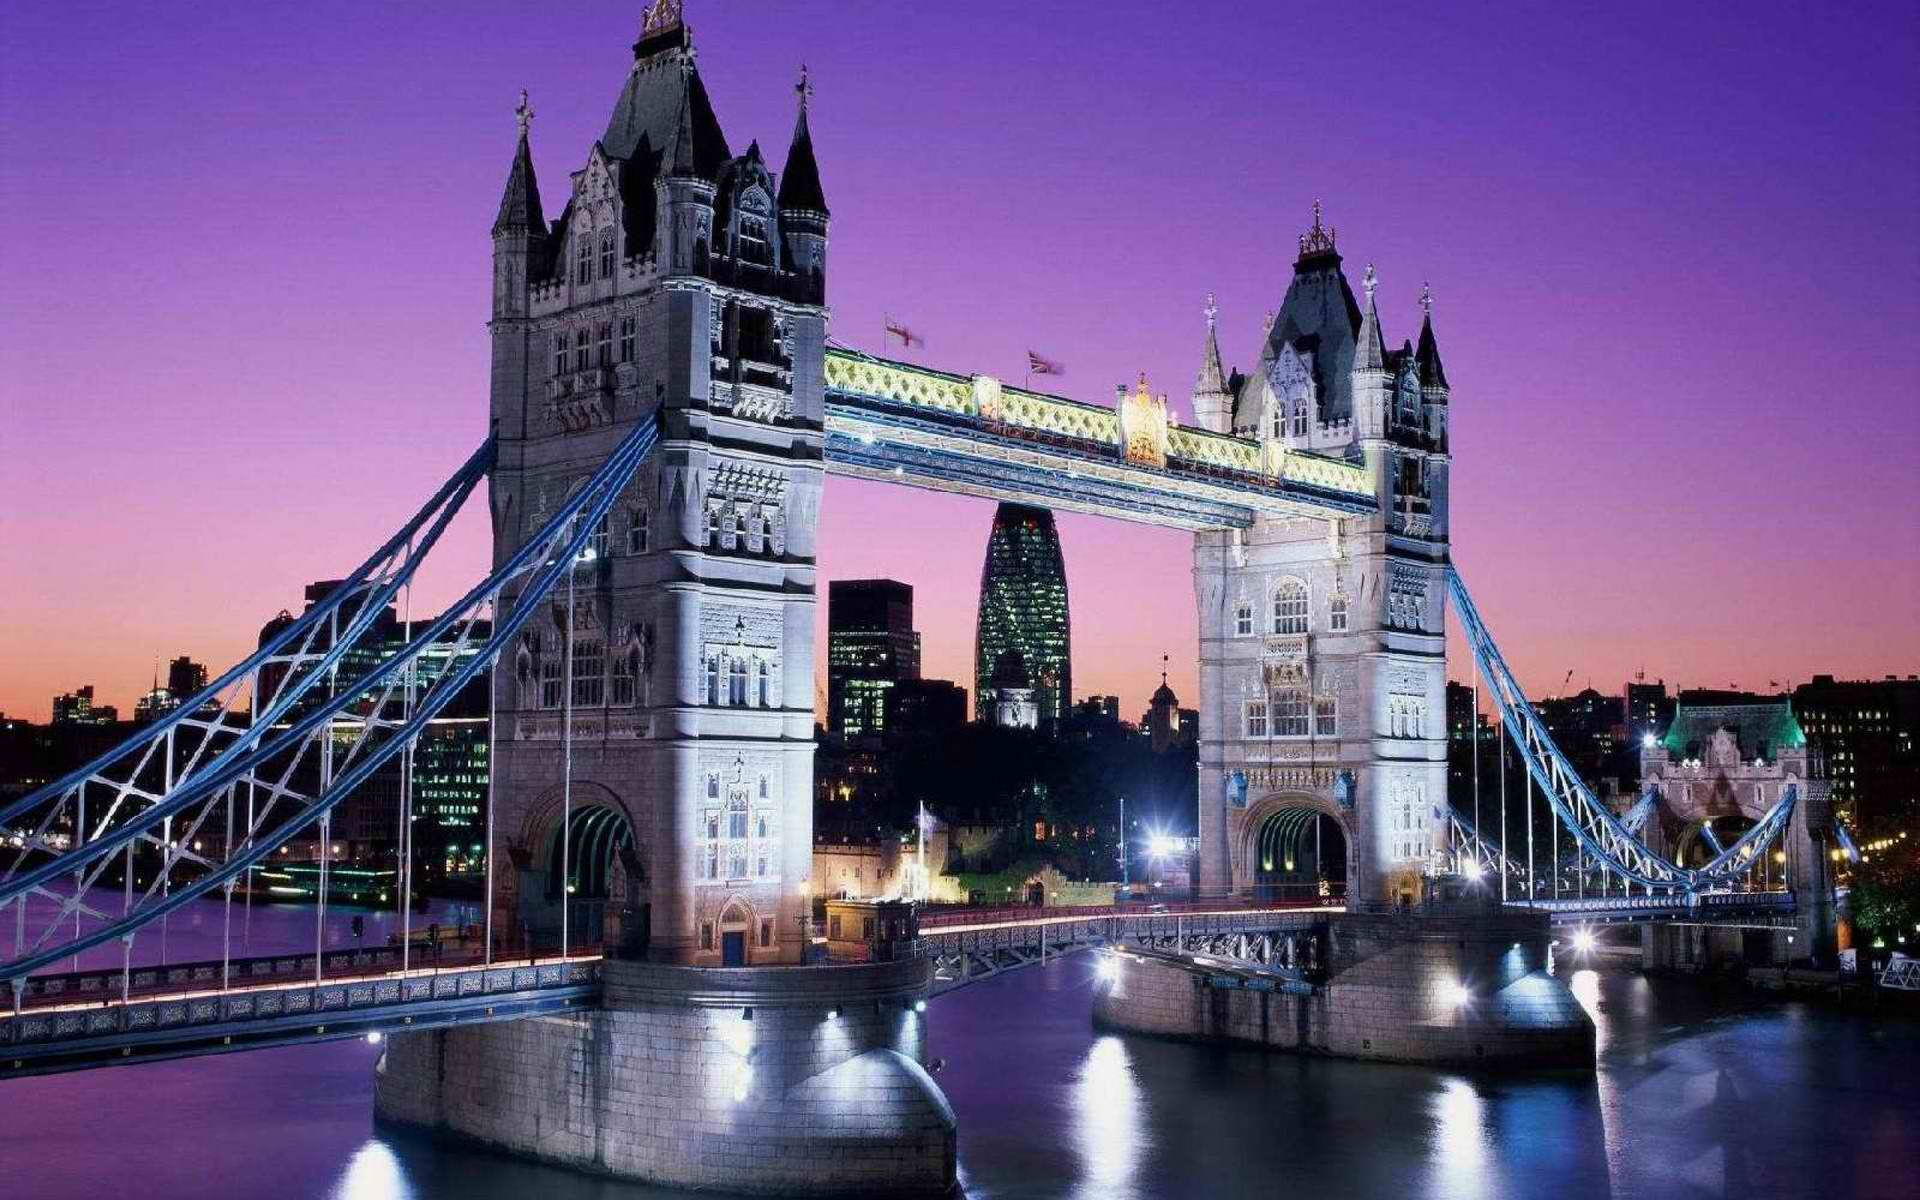 Top 5 Most Visited Cities in the World